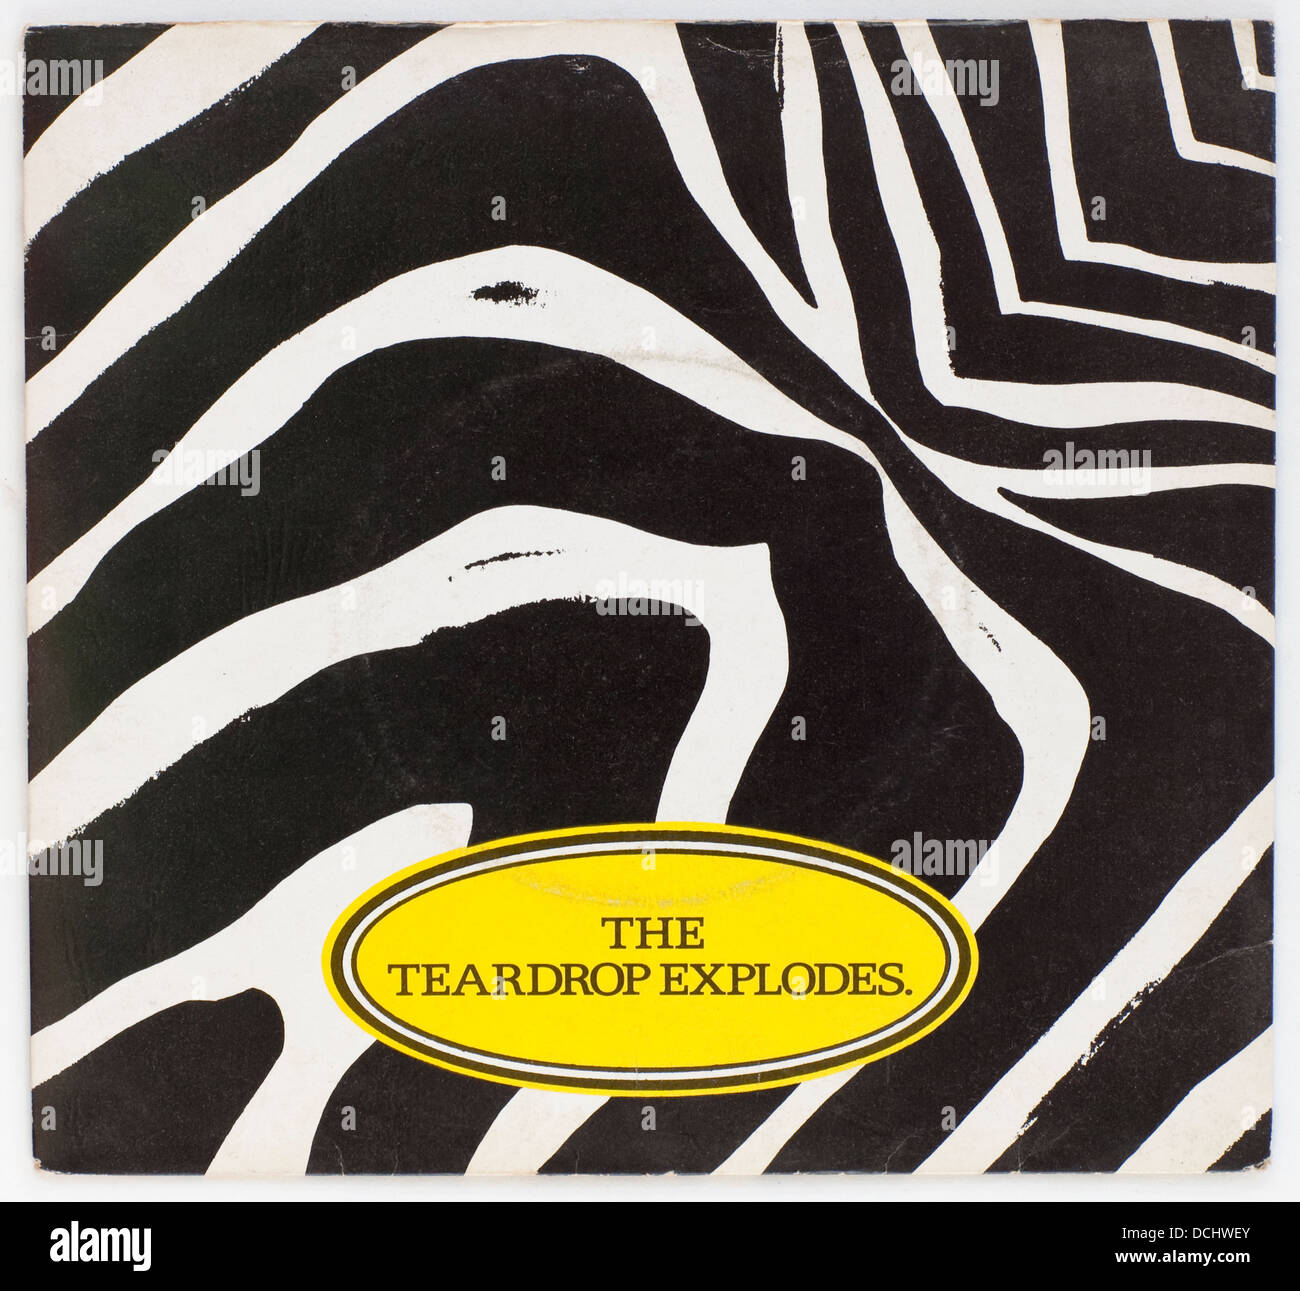 The Teardrop Explodes - Reward, 1981 picture cover single on Phonogram - Stock Image